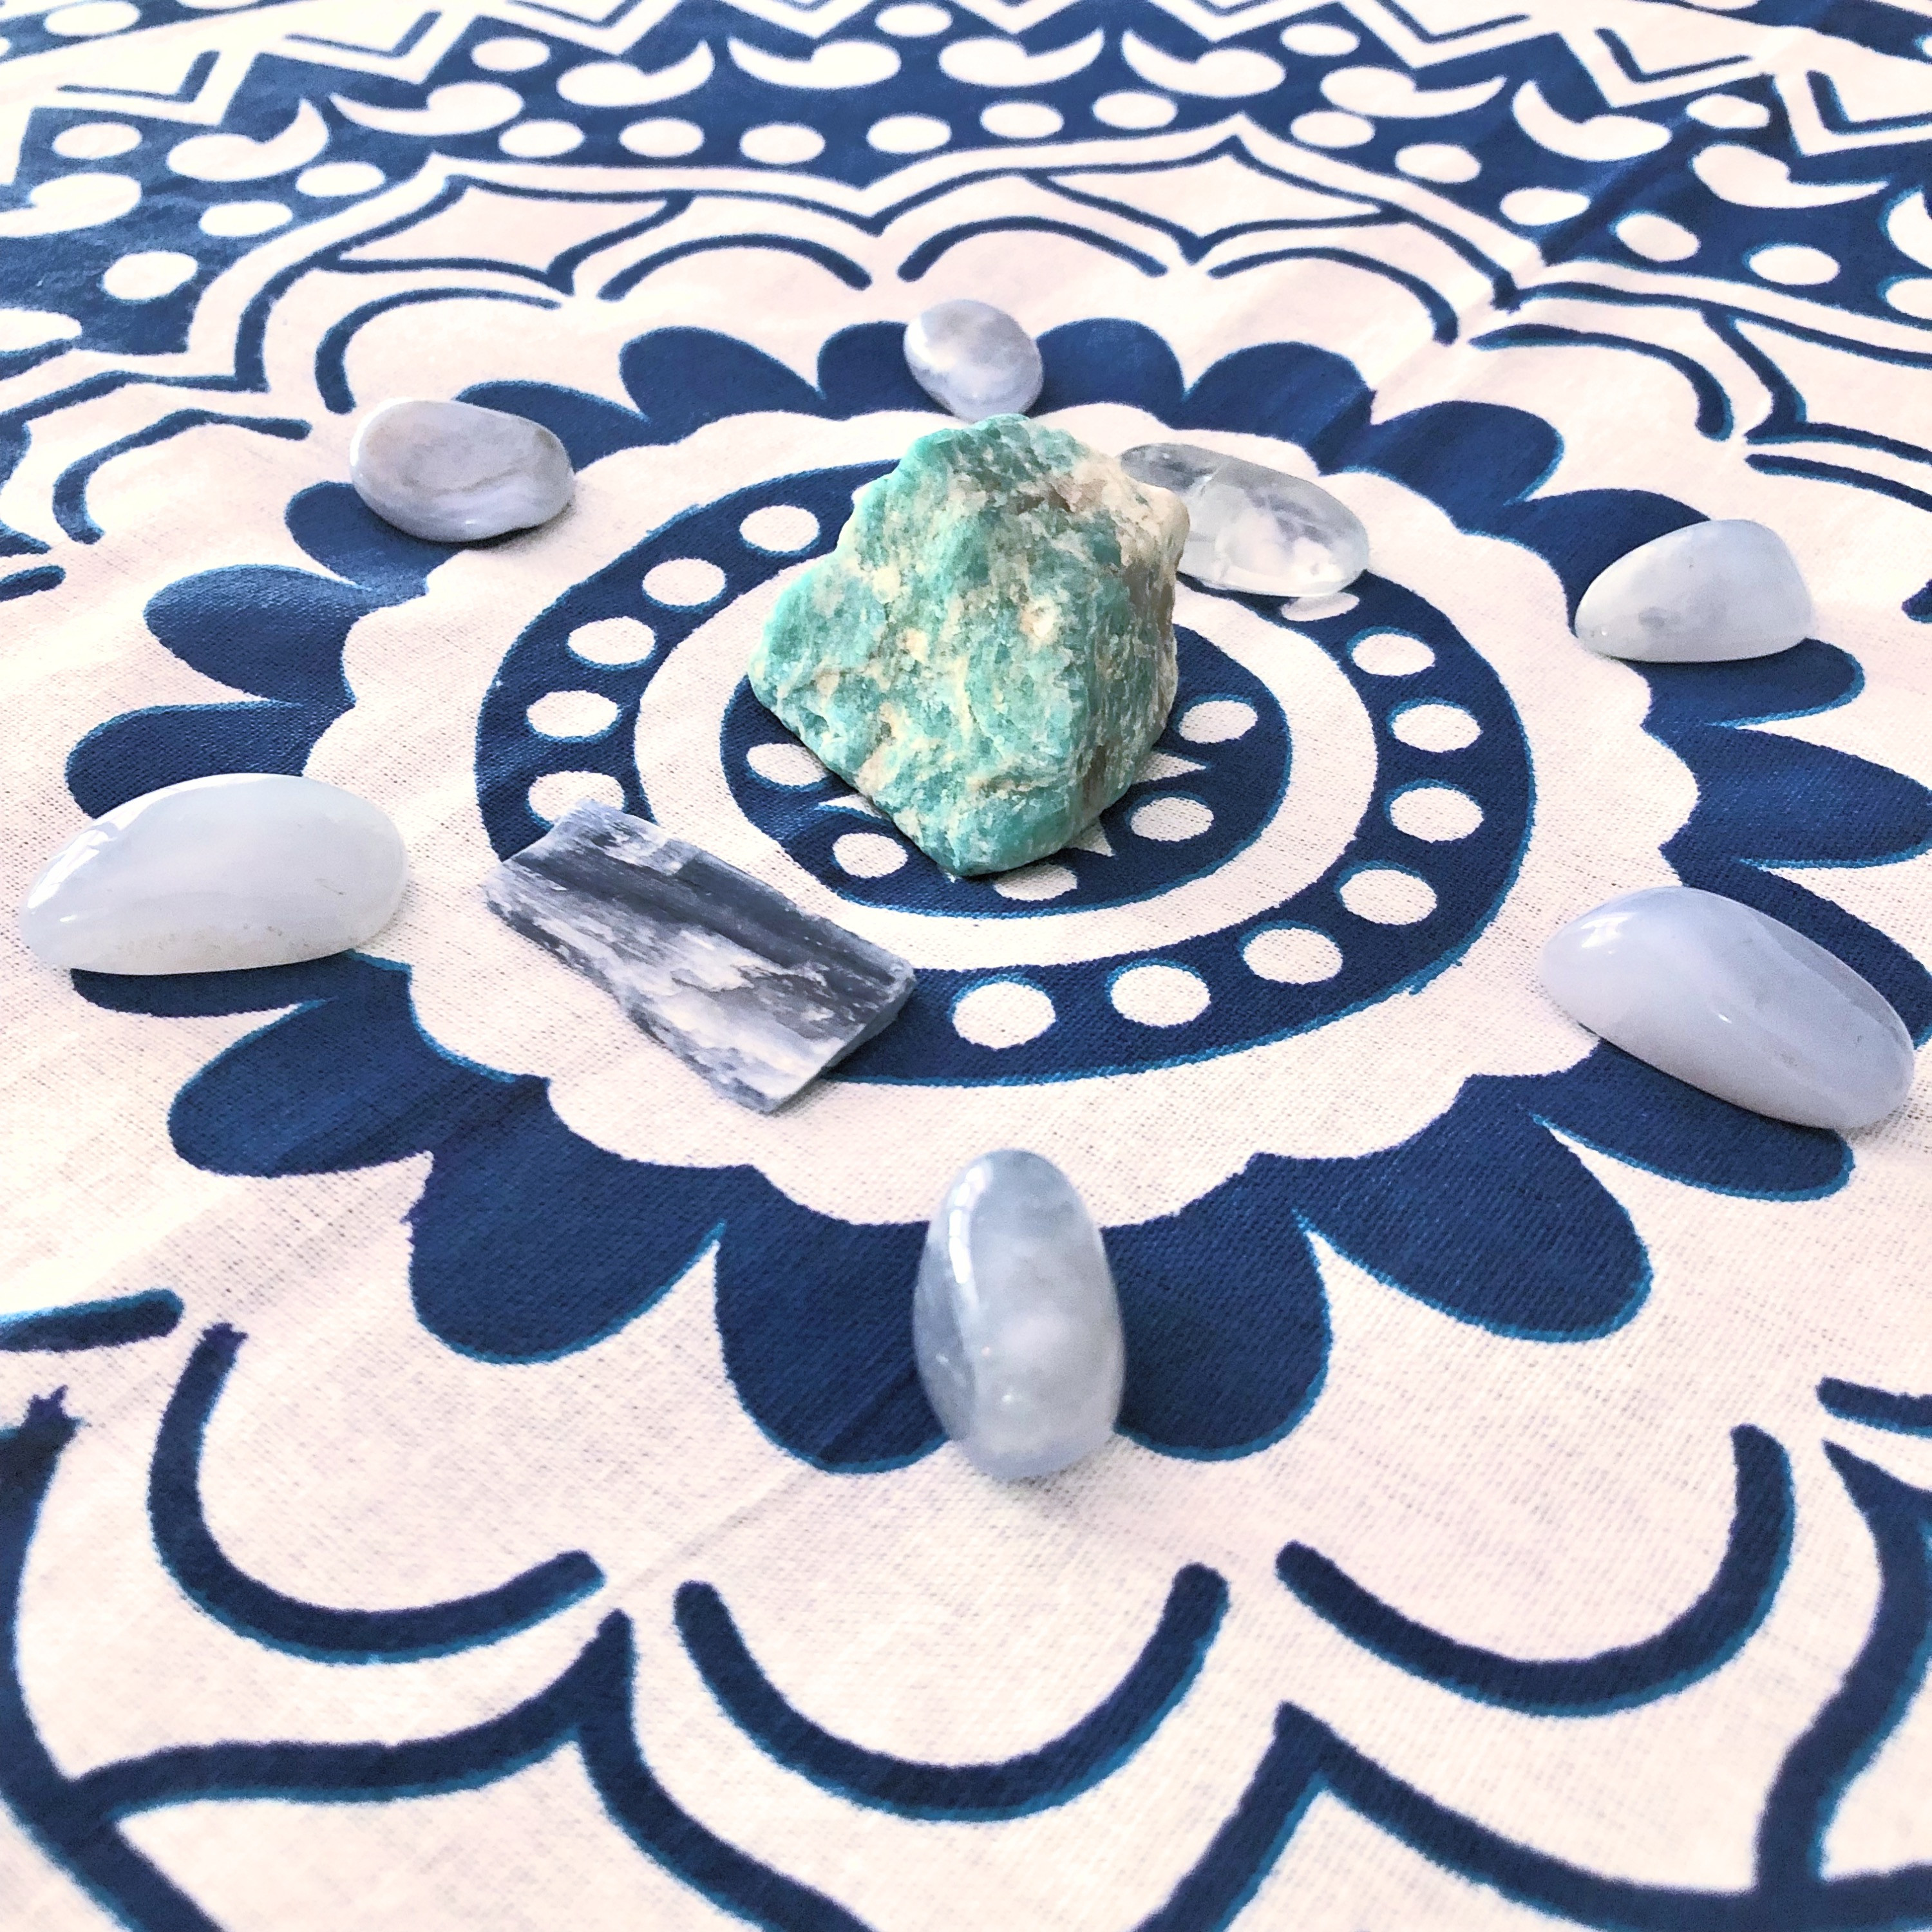 Crystal Healing in Your Home